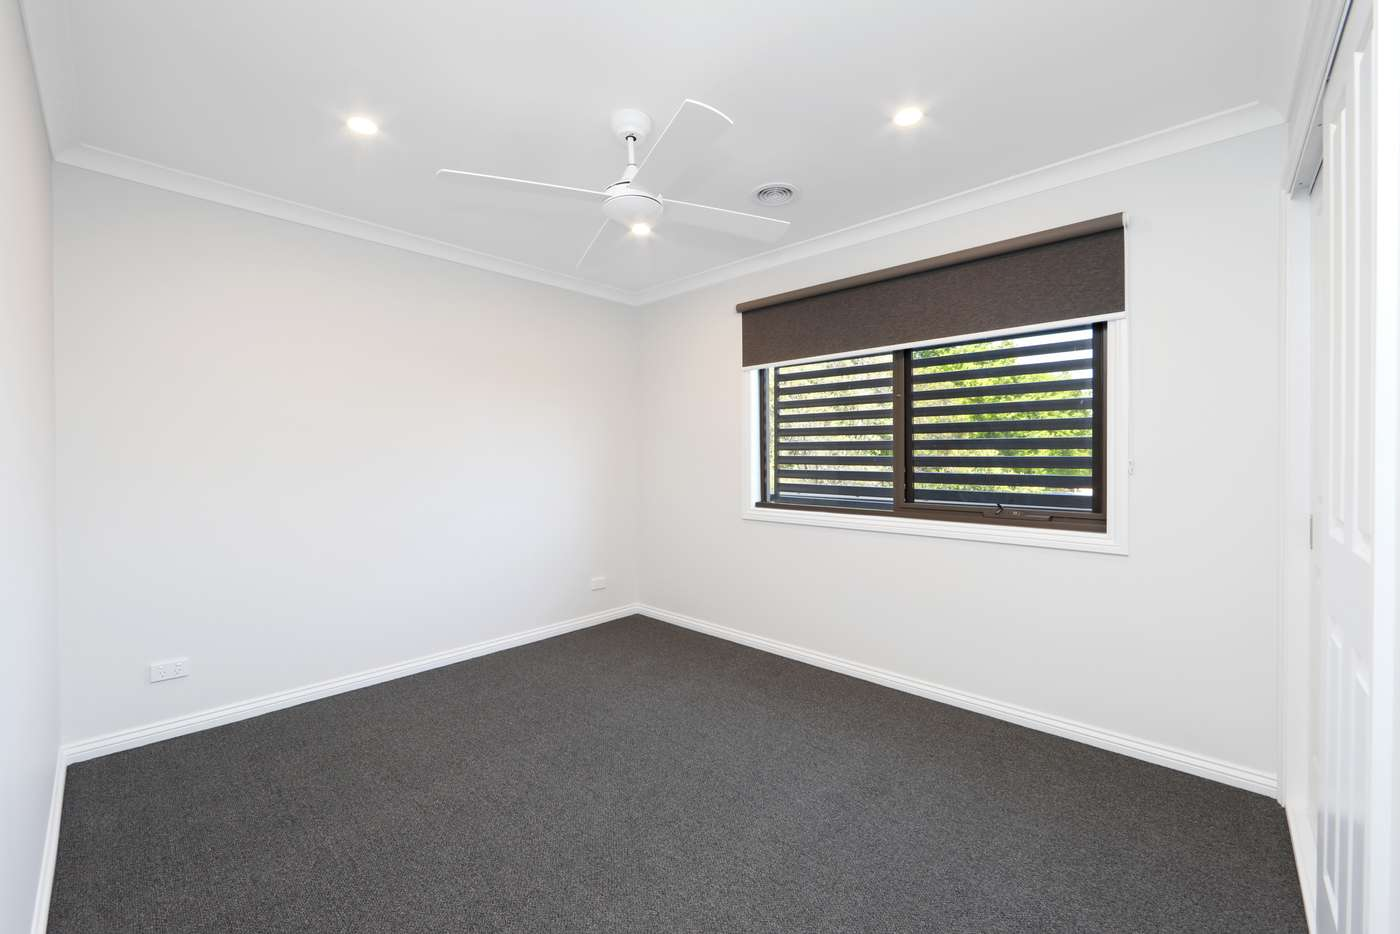 Sixth view of Homely townhouse listing, 6/18 Hawthory Road, Kilsyth VIC 3137